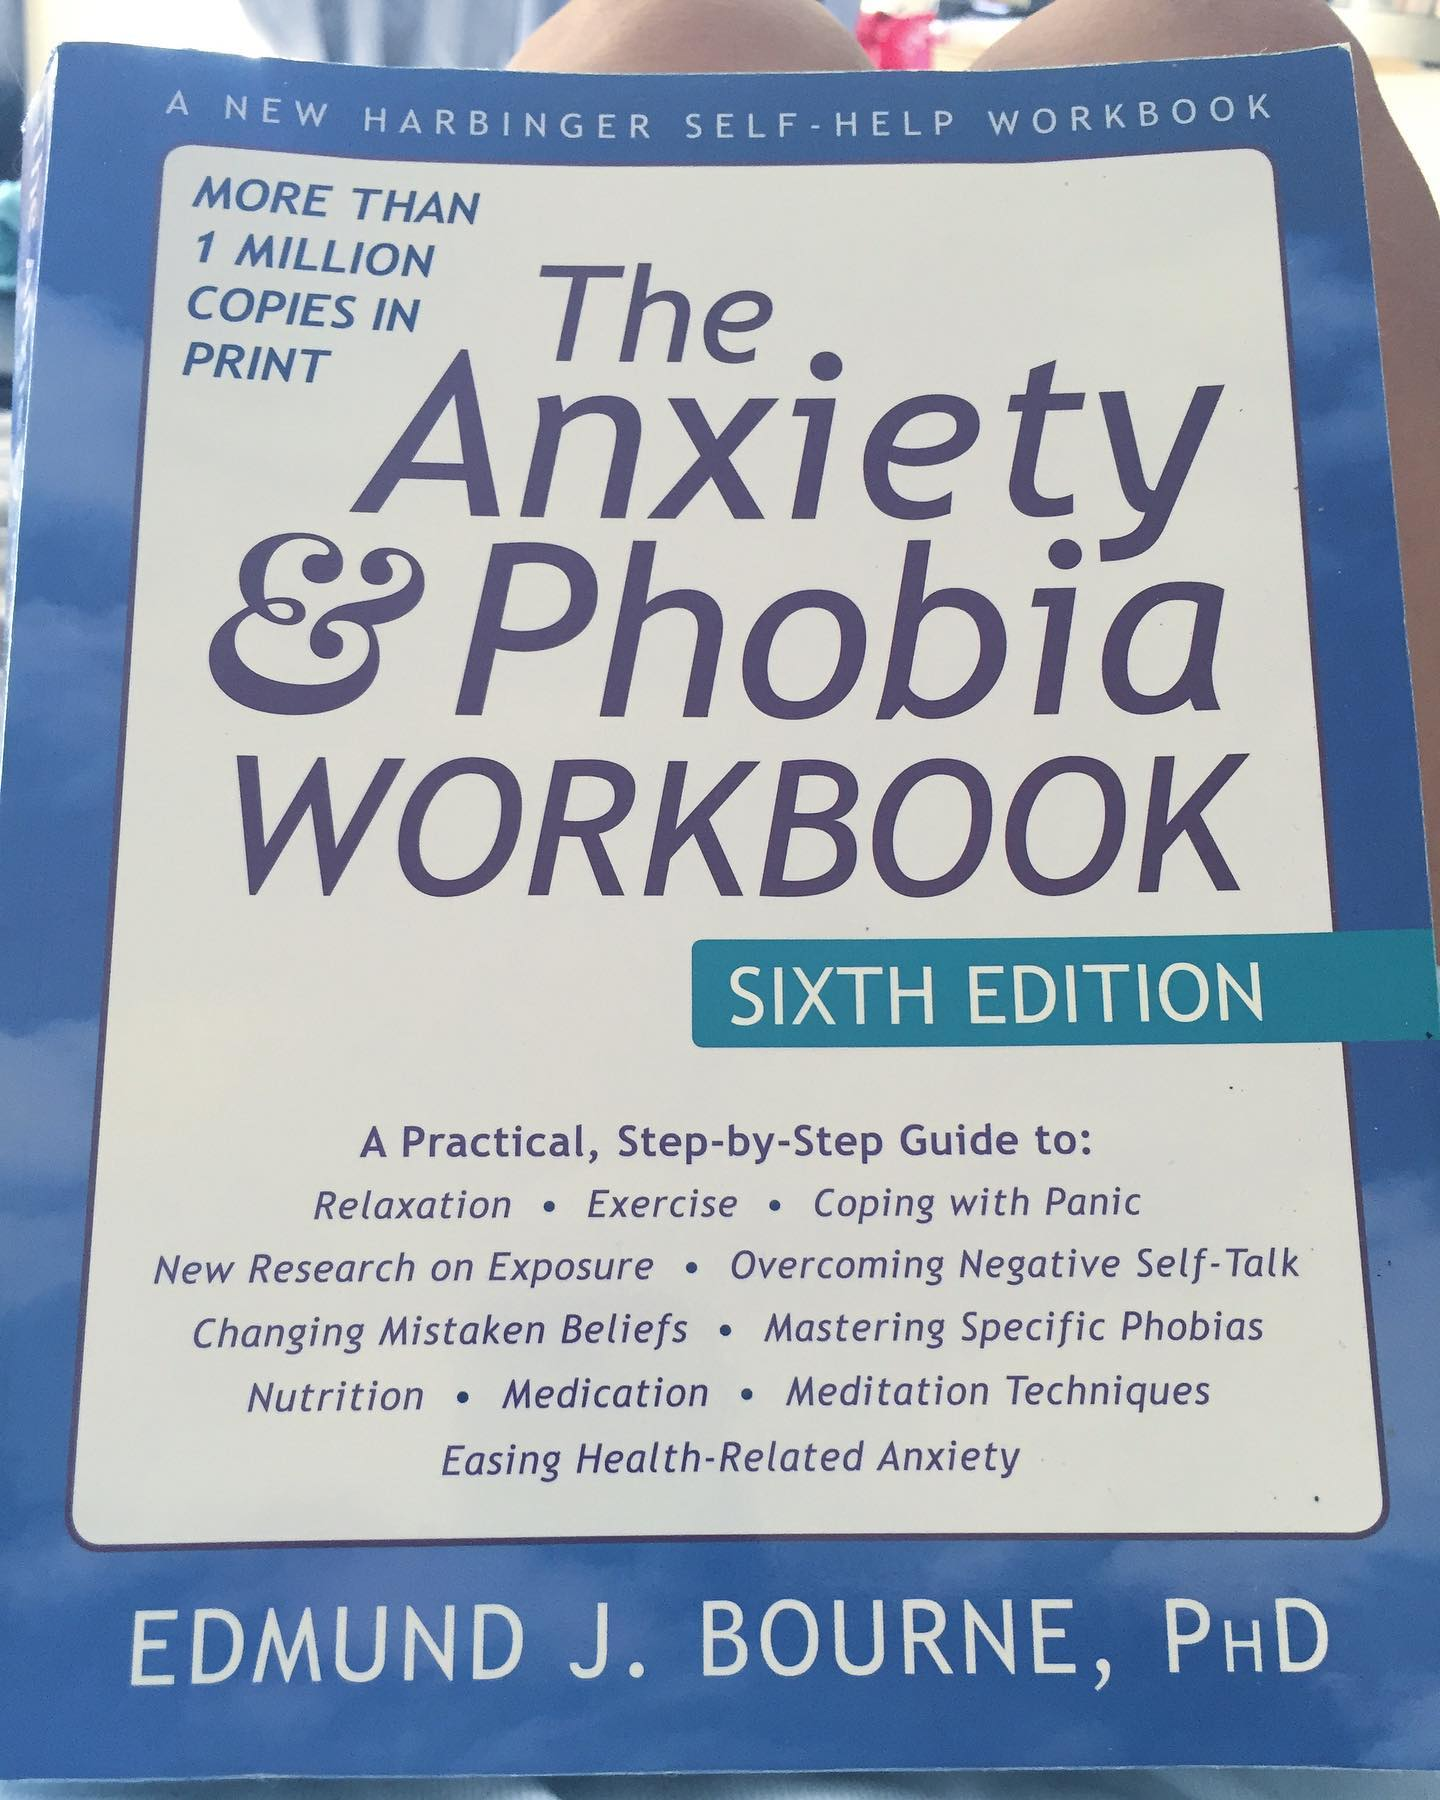 I used exercises from this book in therapy several years ago, and it's so helpful to have it around whenever I need a refresher. I highly recommend it for your mental health toolbox. #ichoosebeauty Day 2413